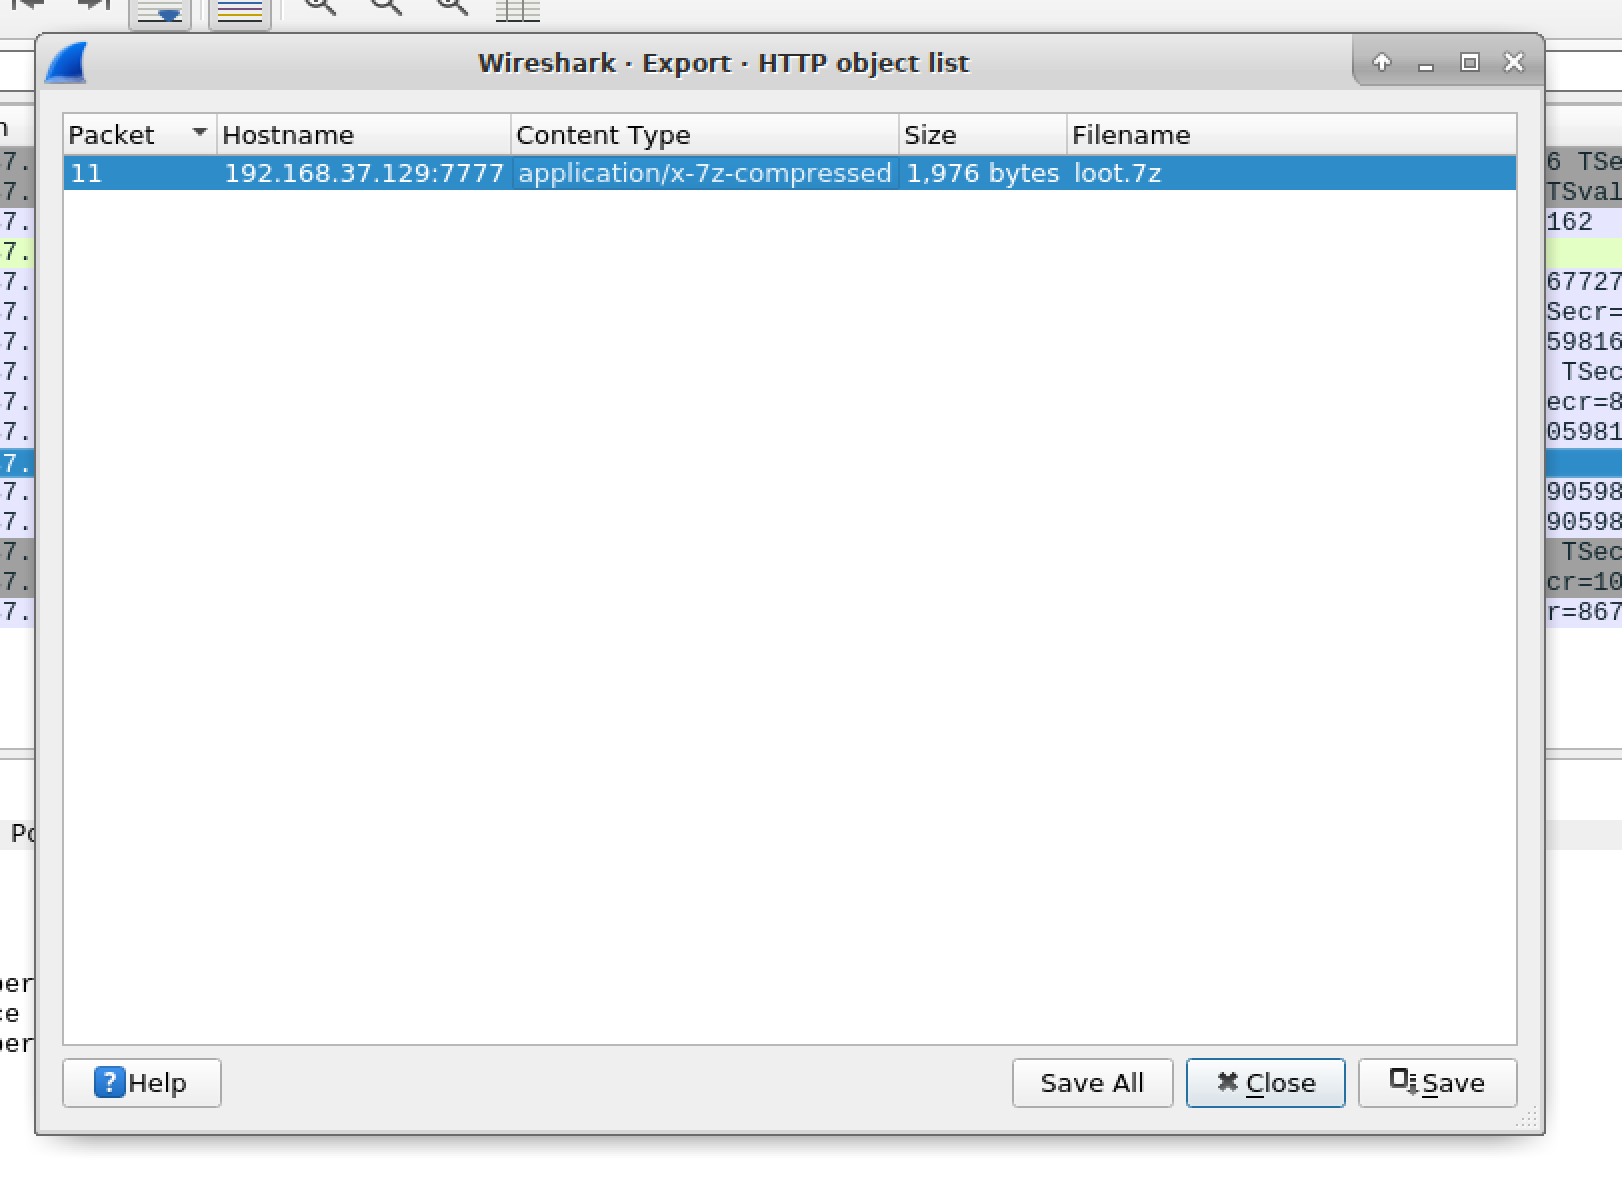 Exporting Wireshark objects